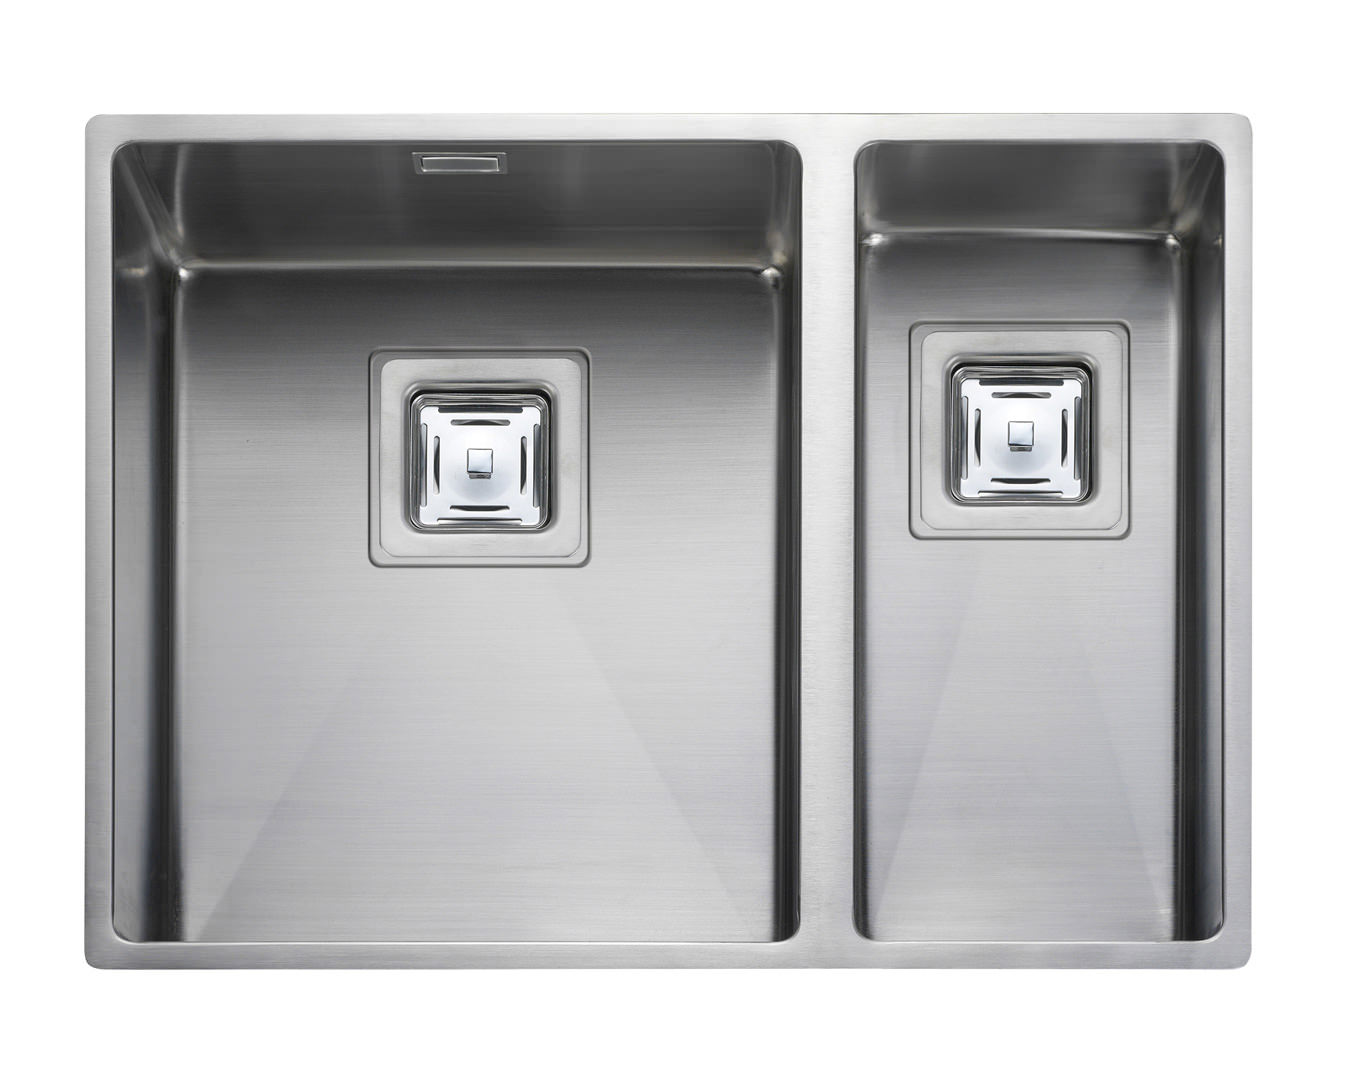 images for bathroom tiles rangemaster atlantic kube 1 5 bowl undermount kitchen sink lh 18873